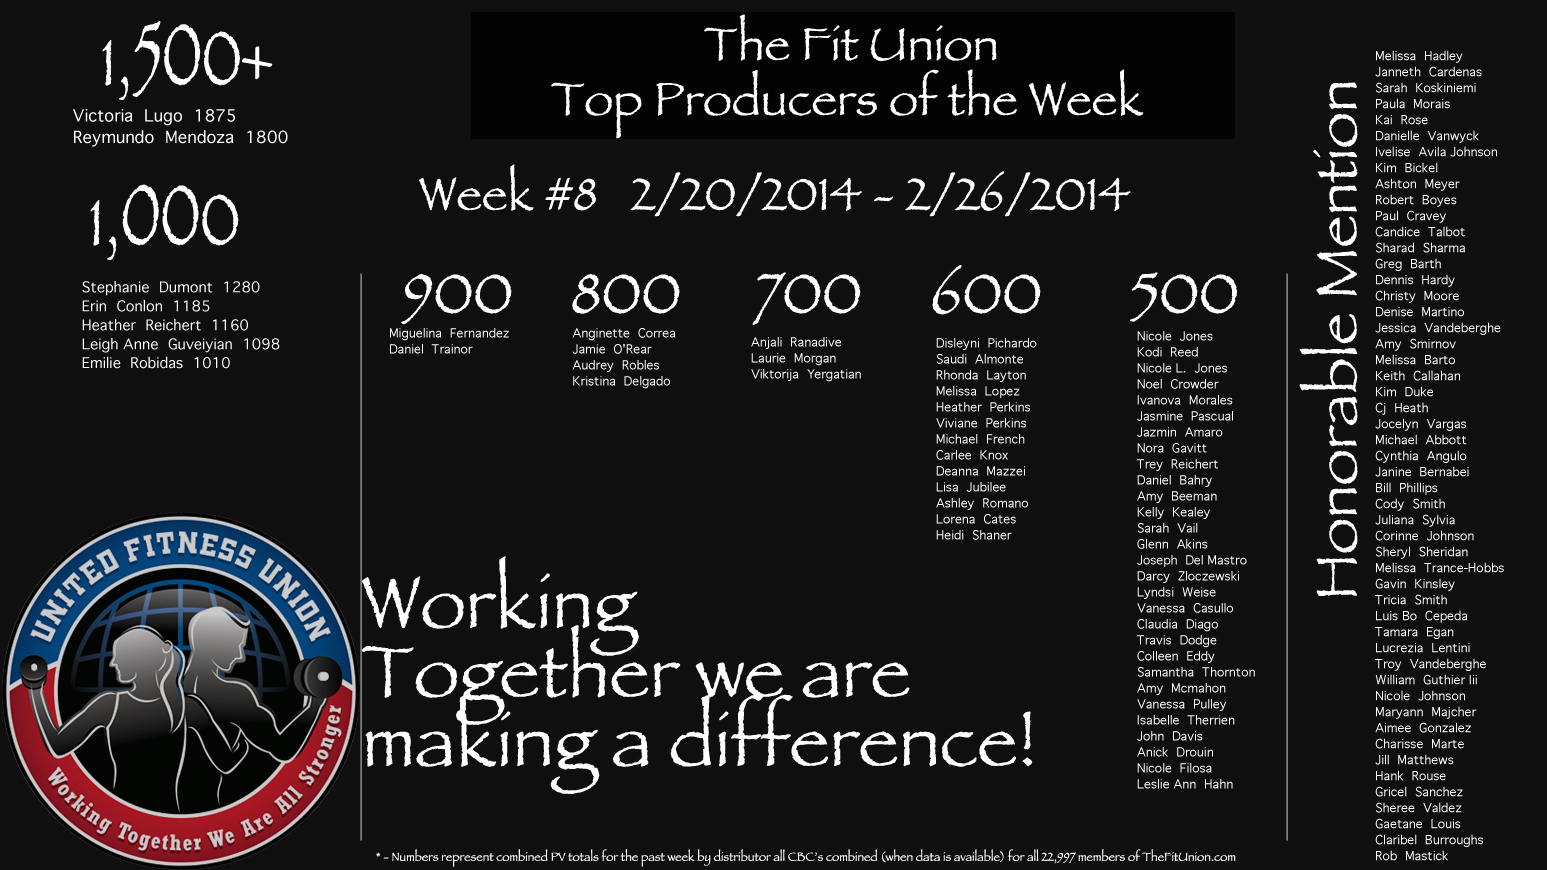 WE 2/26/2014 The Fit Union Top Producers